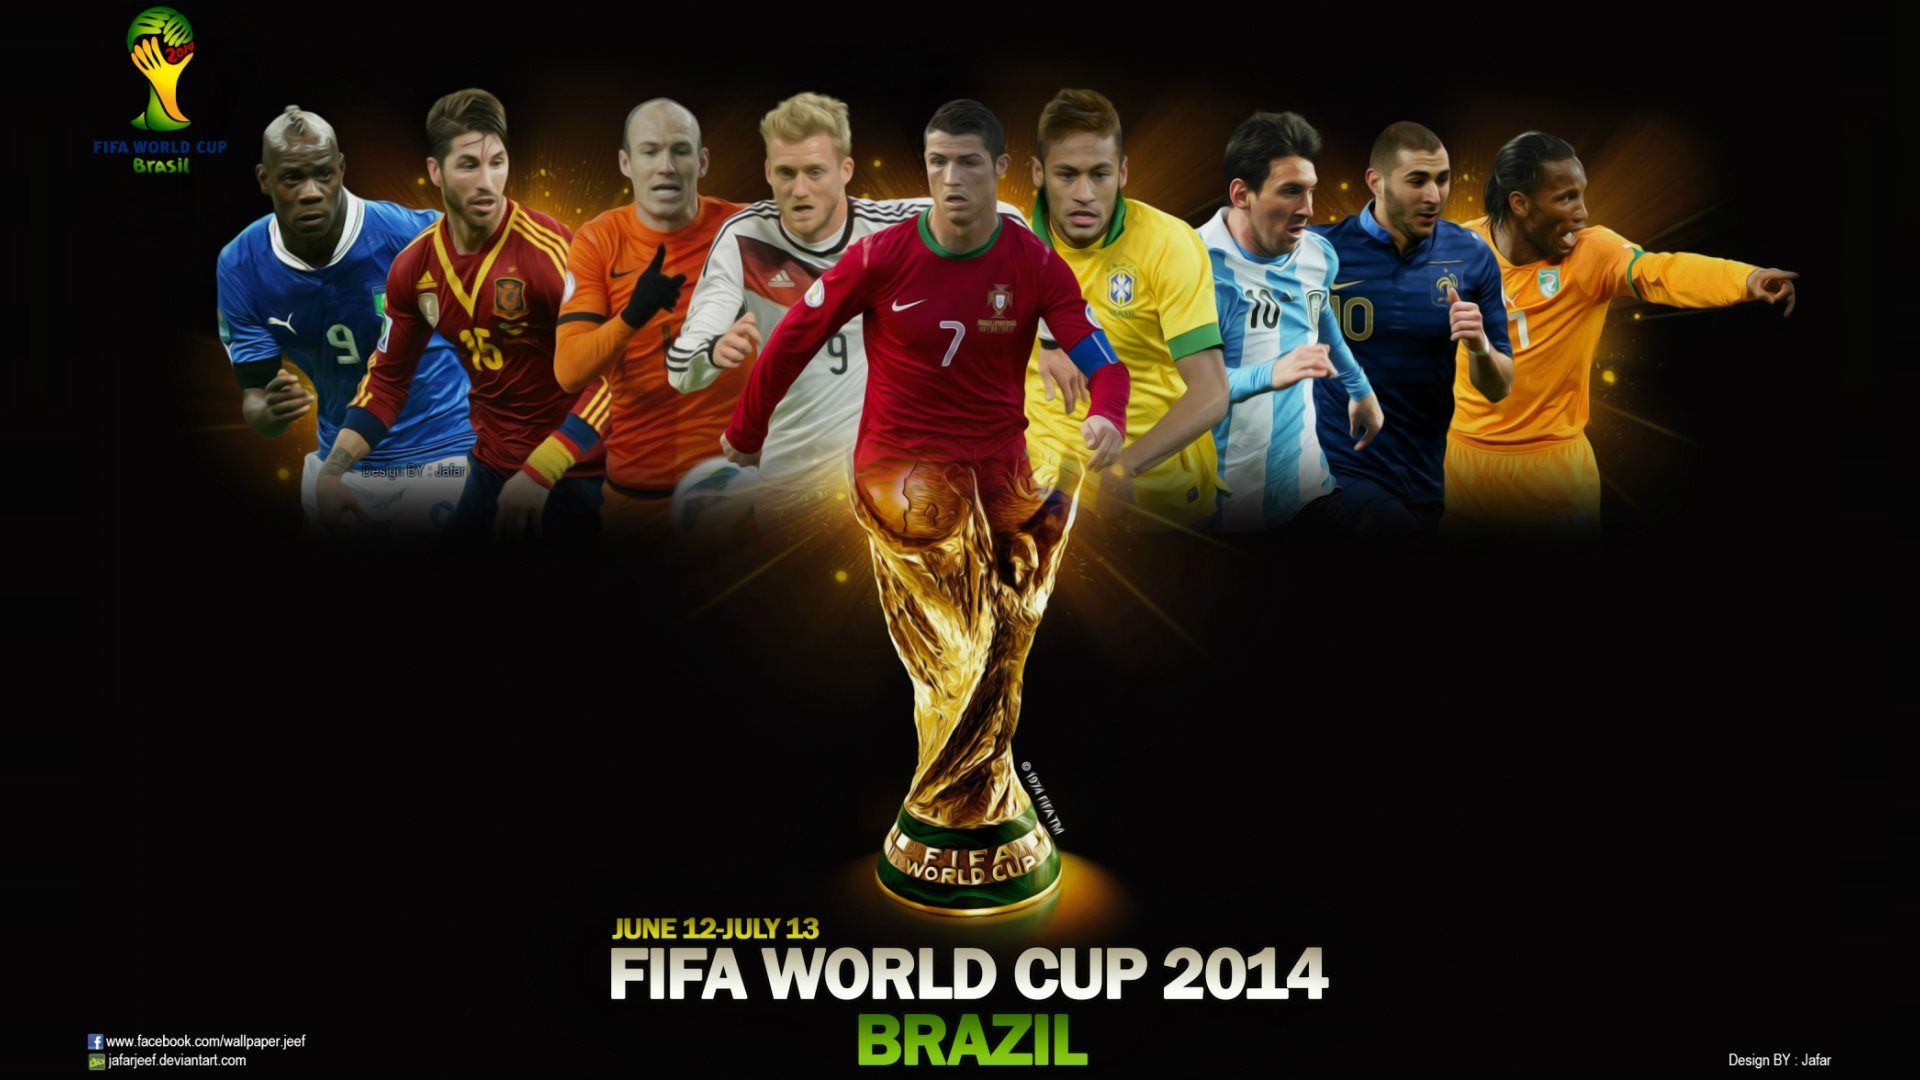 Pin By Mike Chan On Places To Visit Fifa World Cup Teams World Cup World Cup 2014